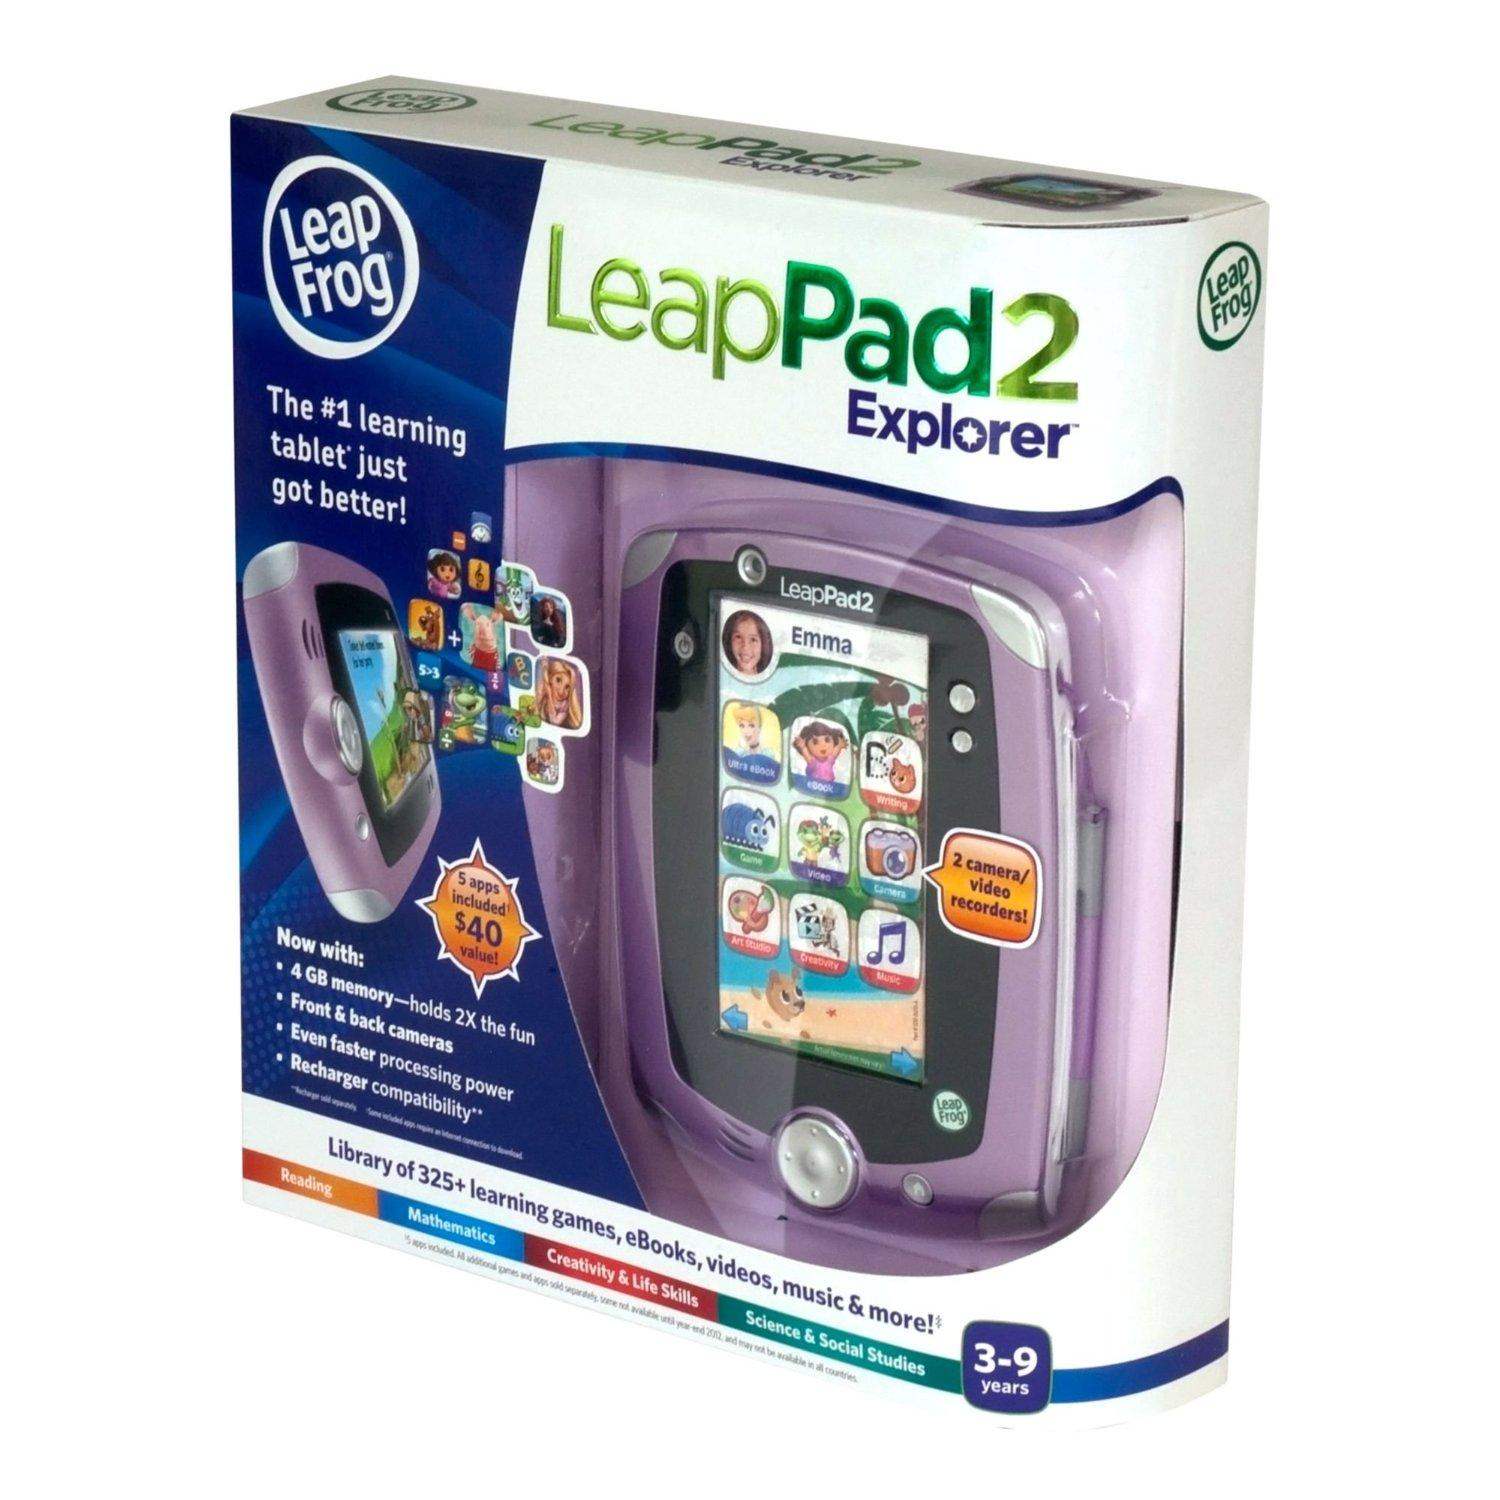 leapfrog leappad 2 Can i download an app to more than one device register a leappad, leapster exlorer, or leapreader to a leapfrog parent account missing driver message on mac.